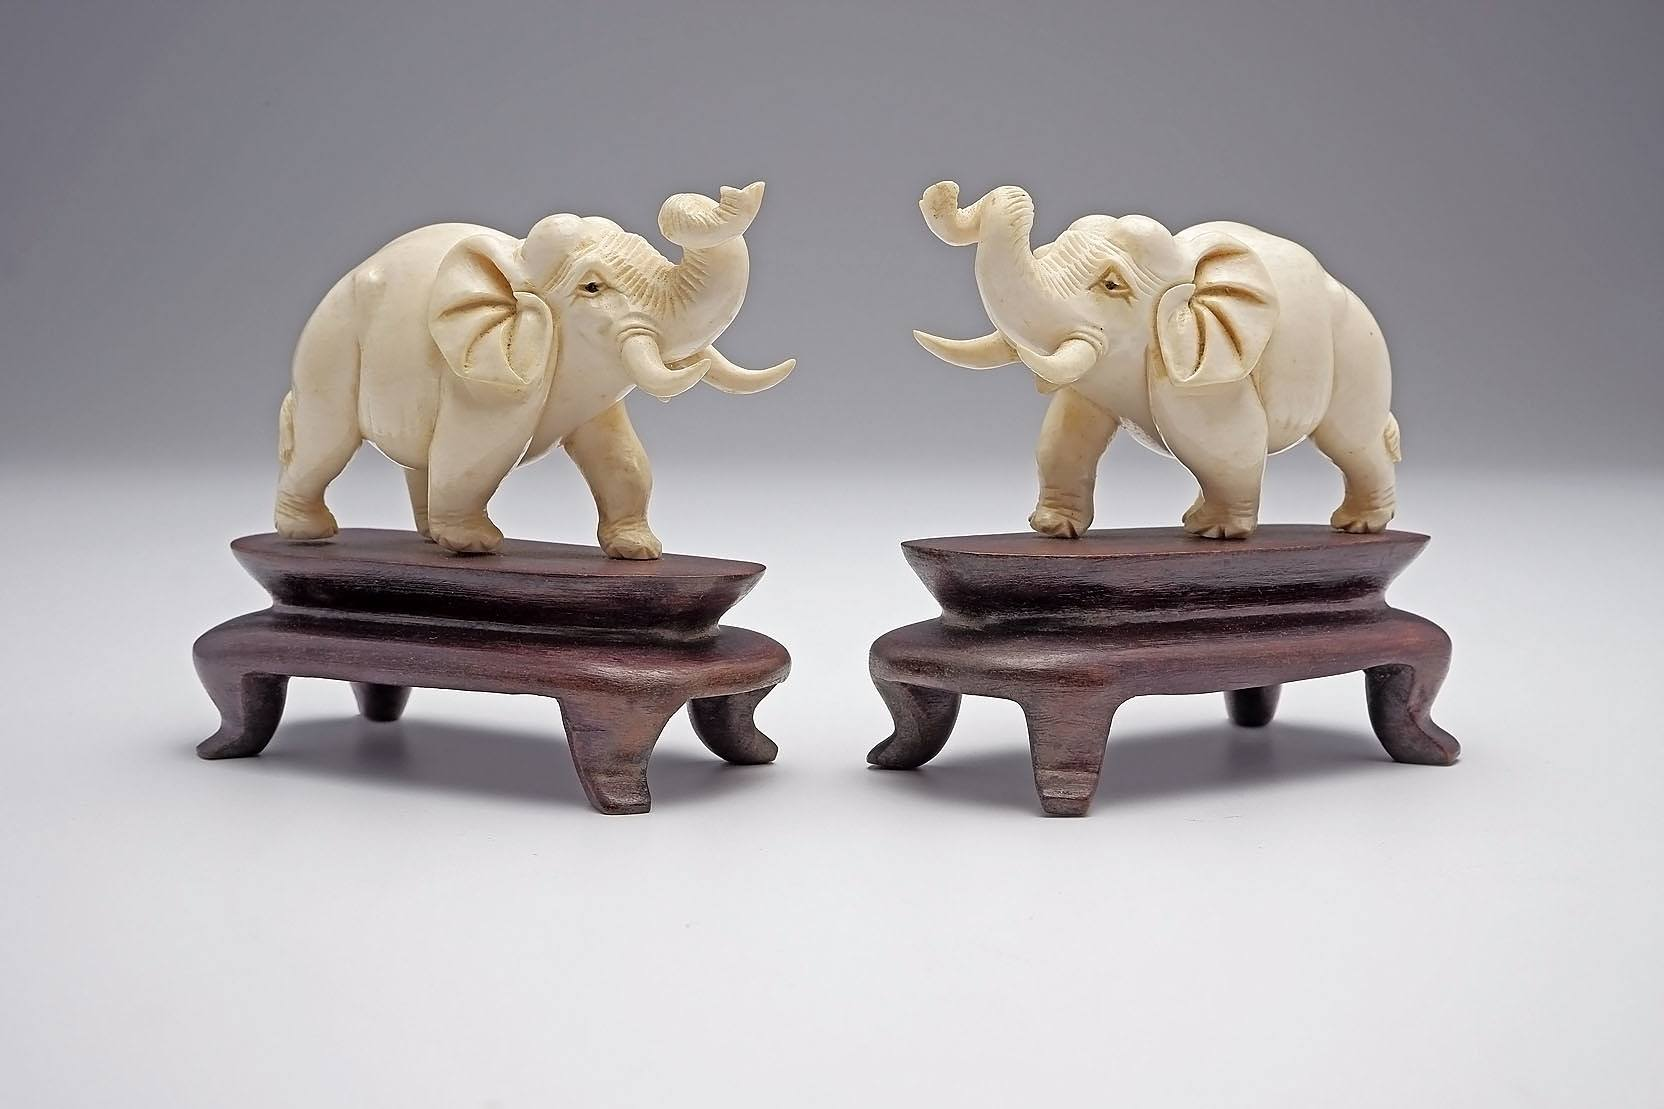 'Pair of Chinese Ivory Elephants on Caved Hardwood Stands, Mid 20th Century'